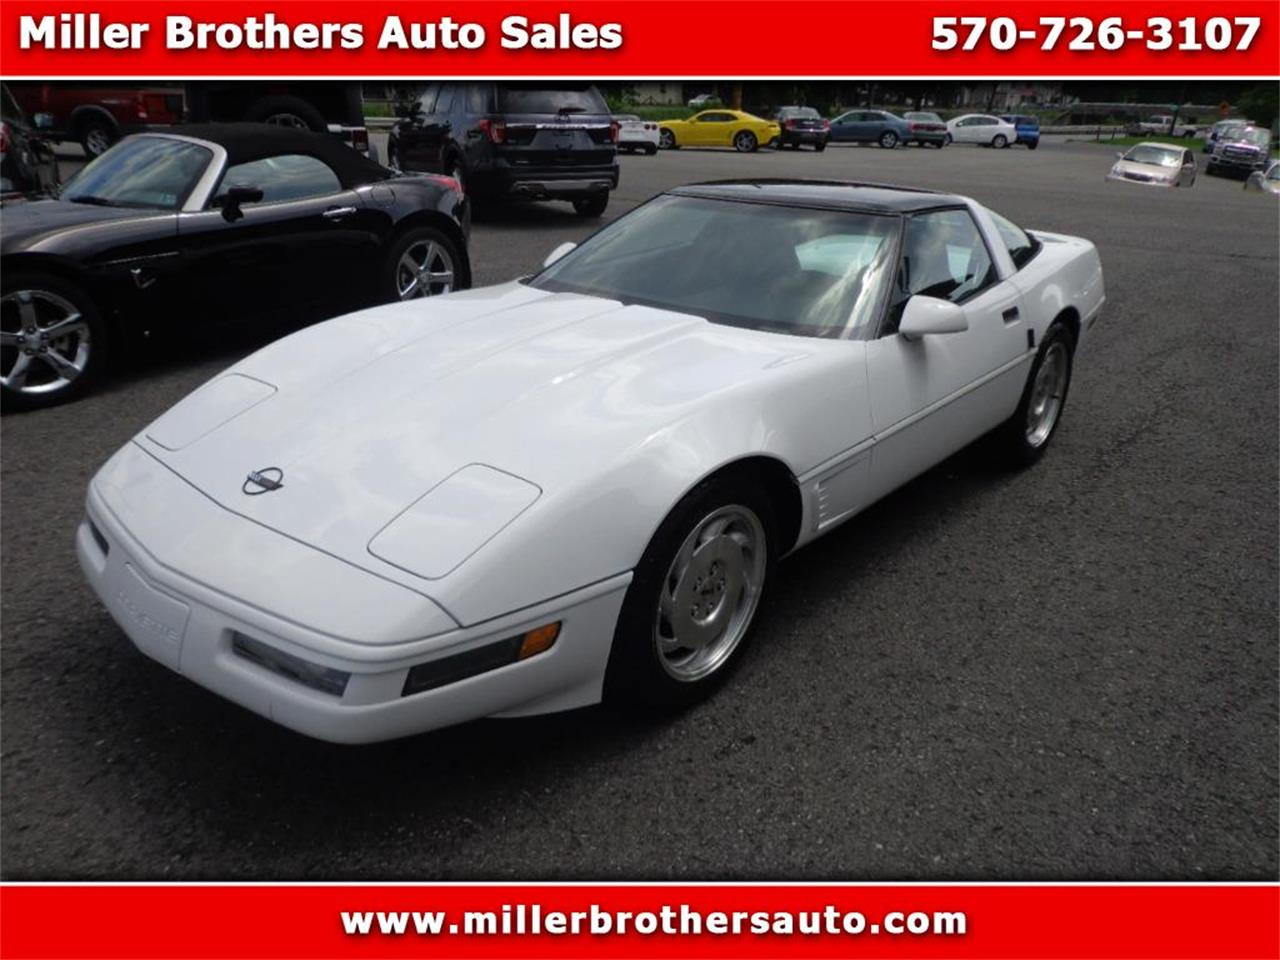 Large Picture of '96 Chevrolet Corvette located in MILL HALL Pennsylvania Auction Vehicle - OINA